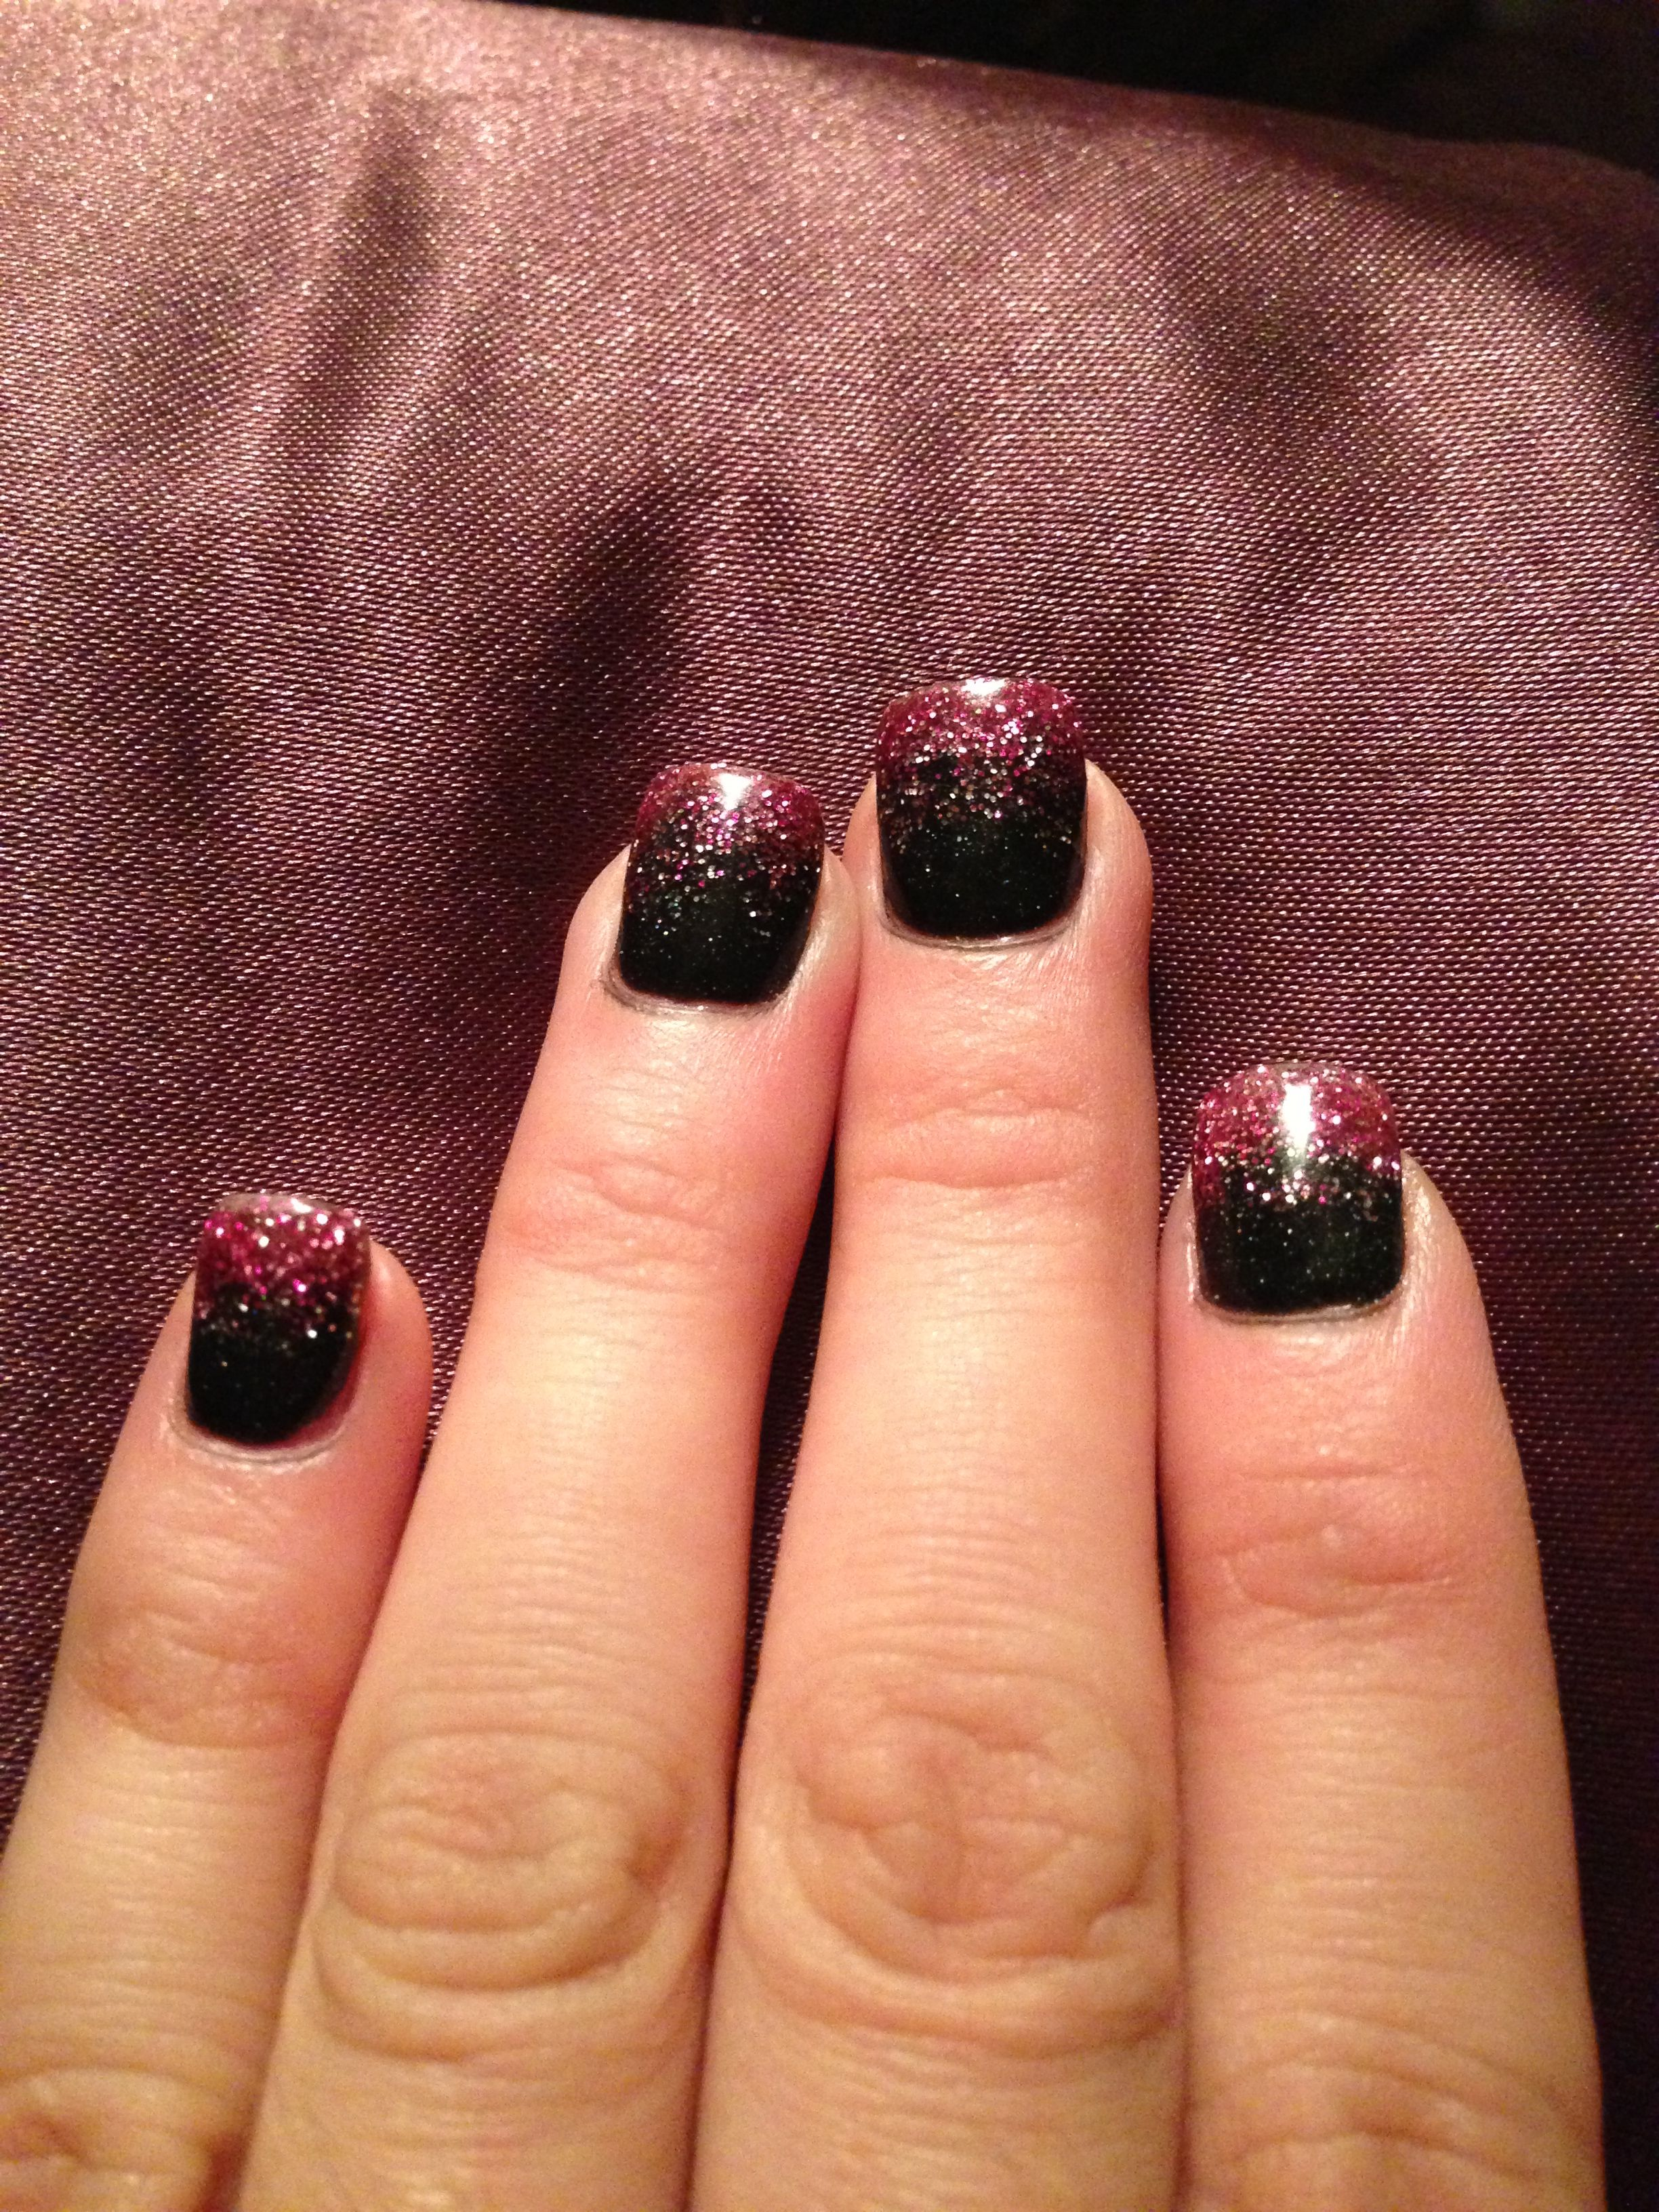 No Nail Polish Black Sparkle Acrylic Powder With Pink Overlay And A Clear Shellac Top Coat I Don T Have To Worry About